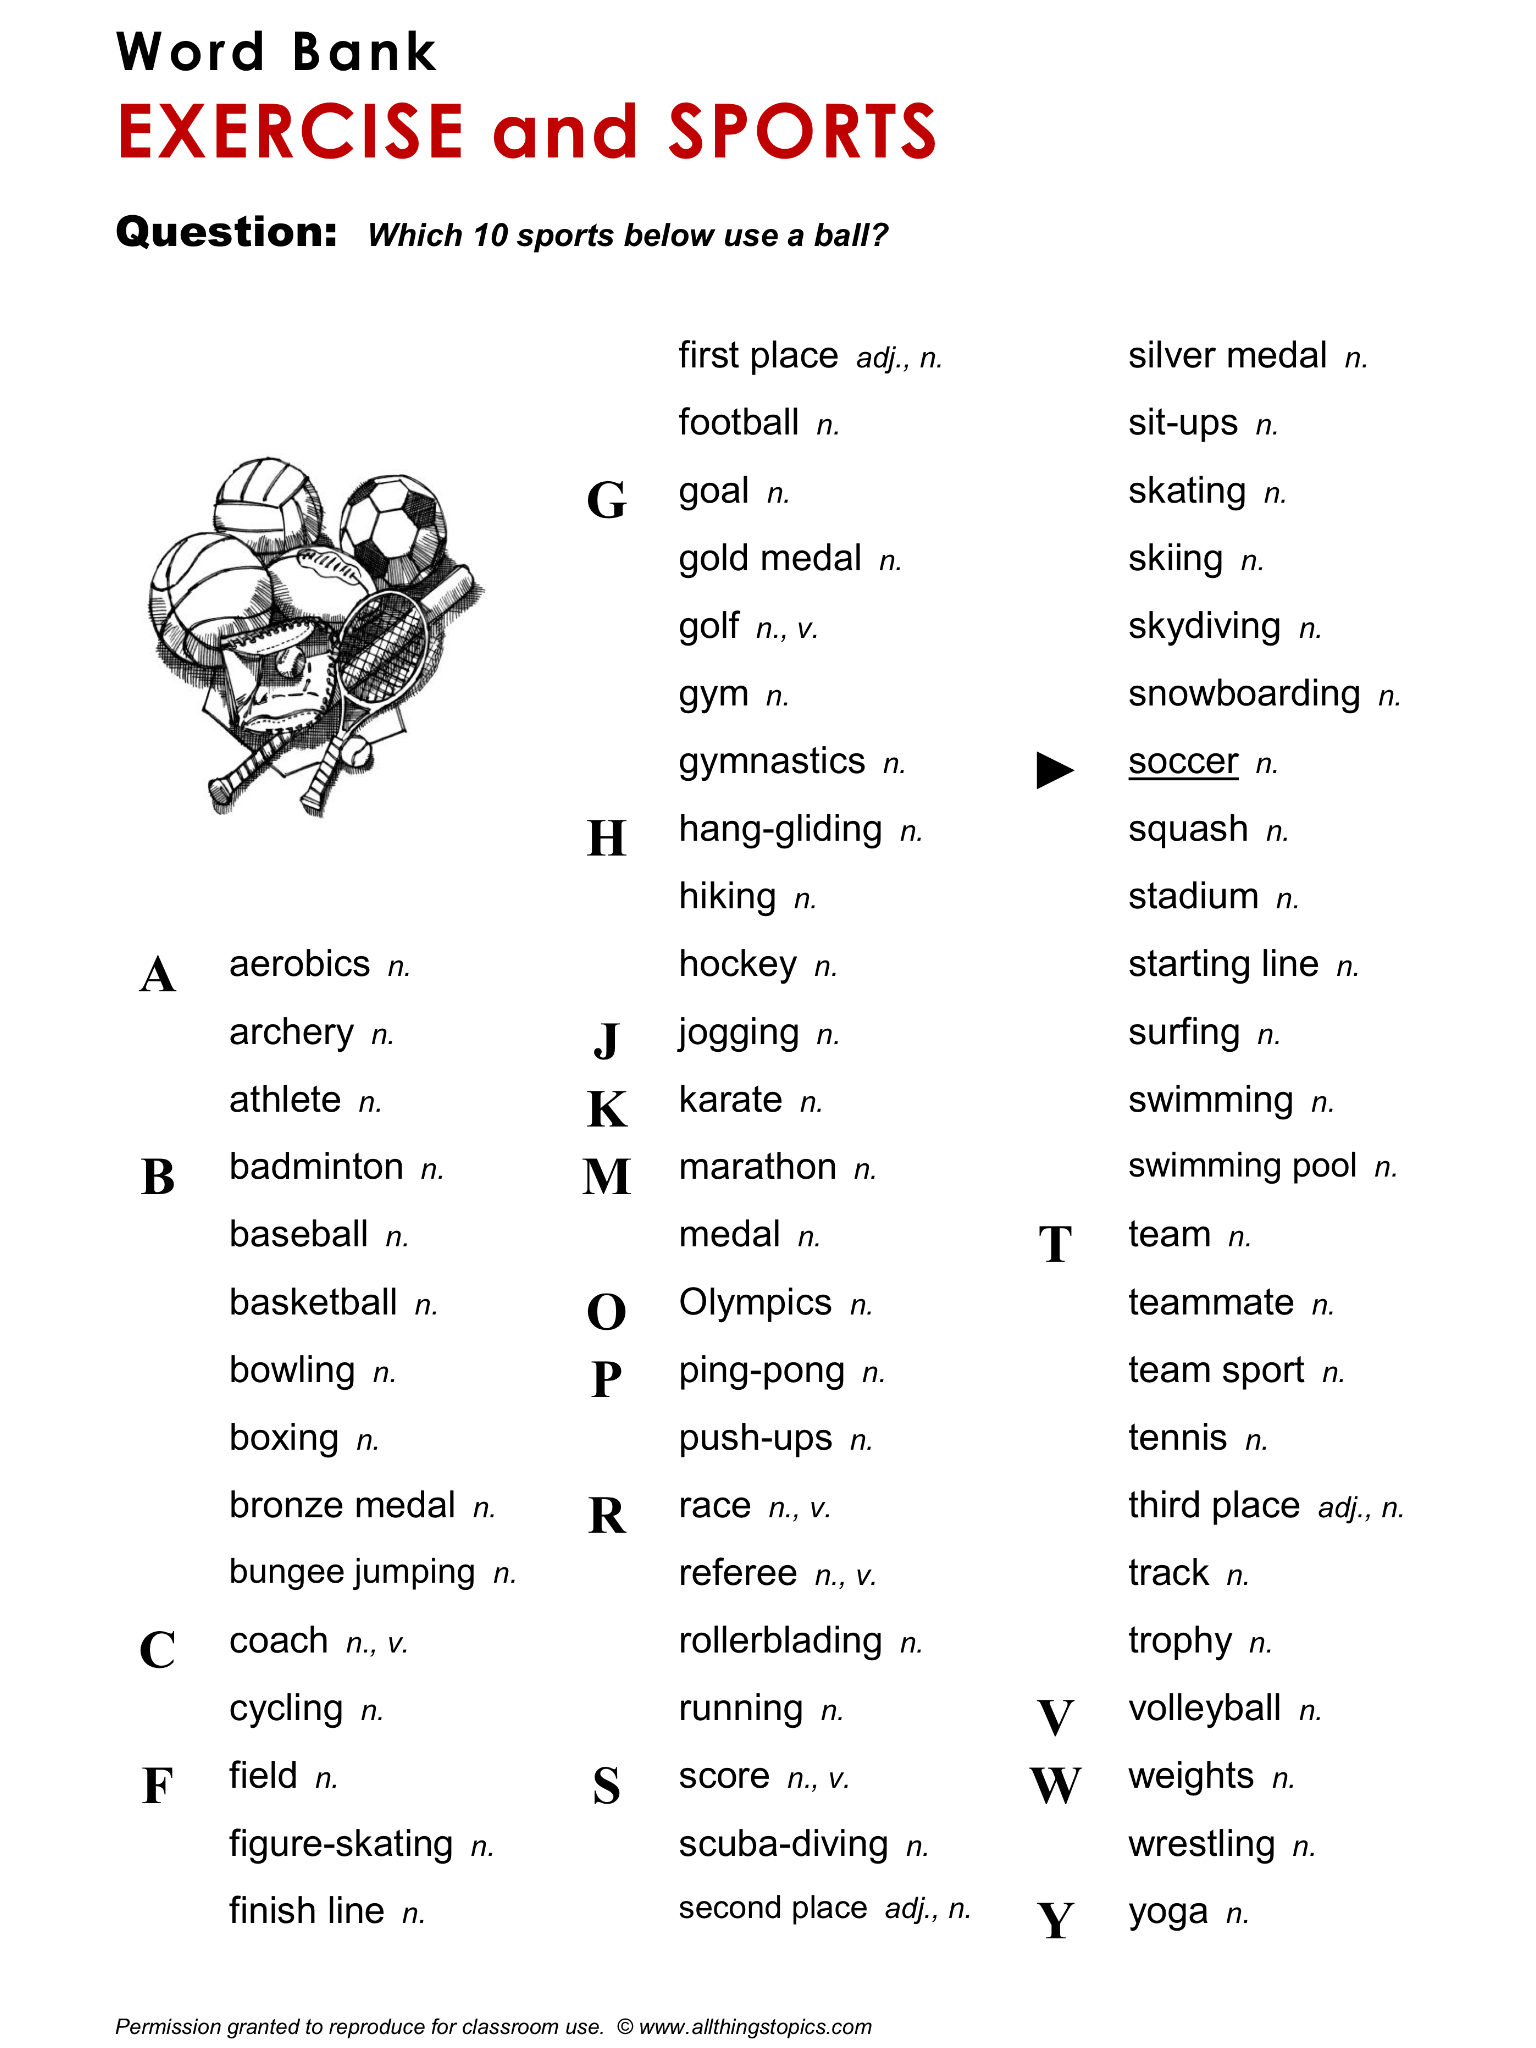 Word Bank Exercise And Sports Supplementary Vocabulary